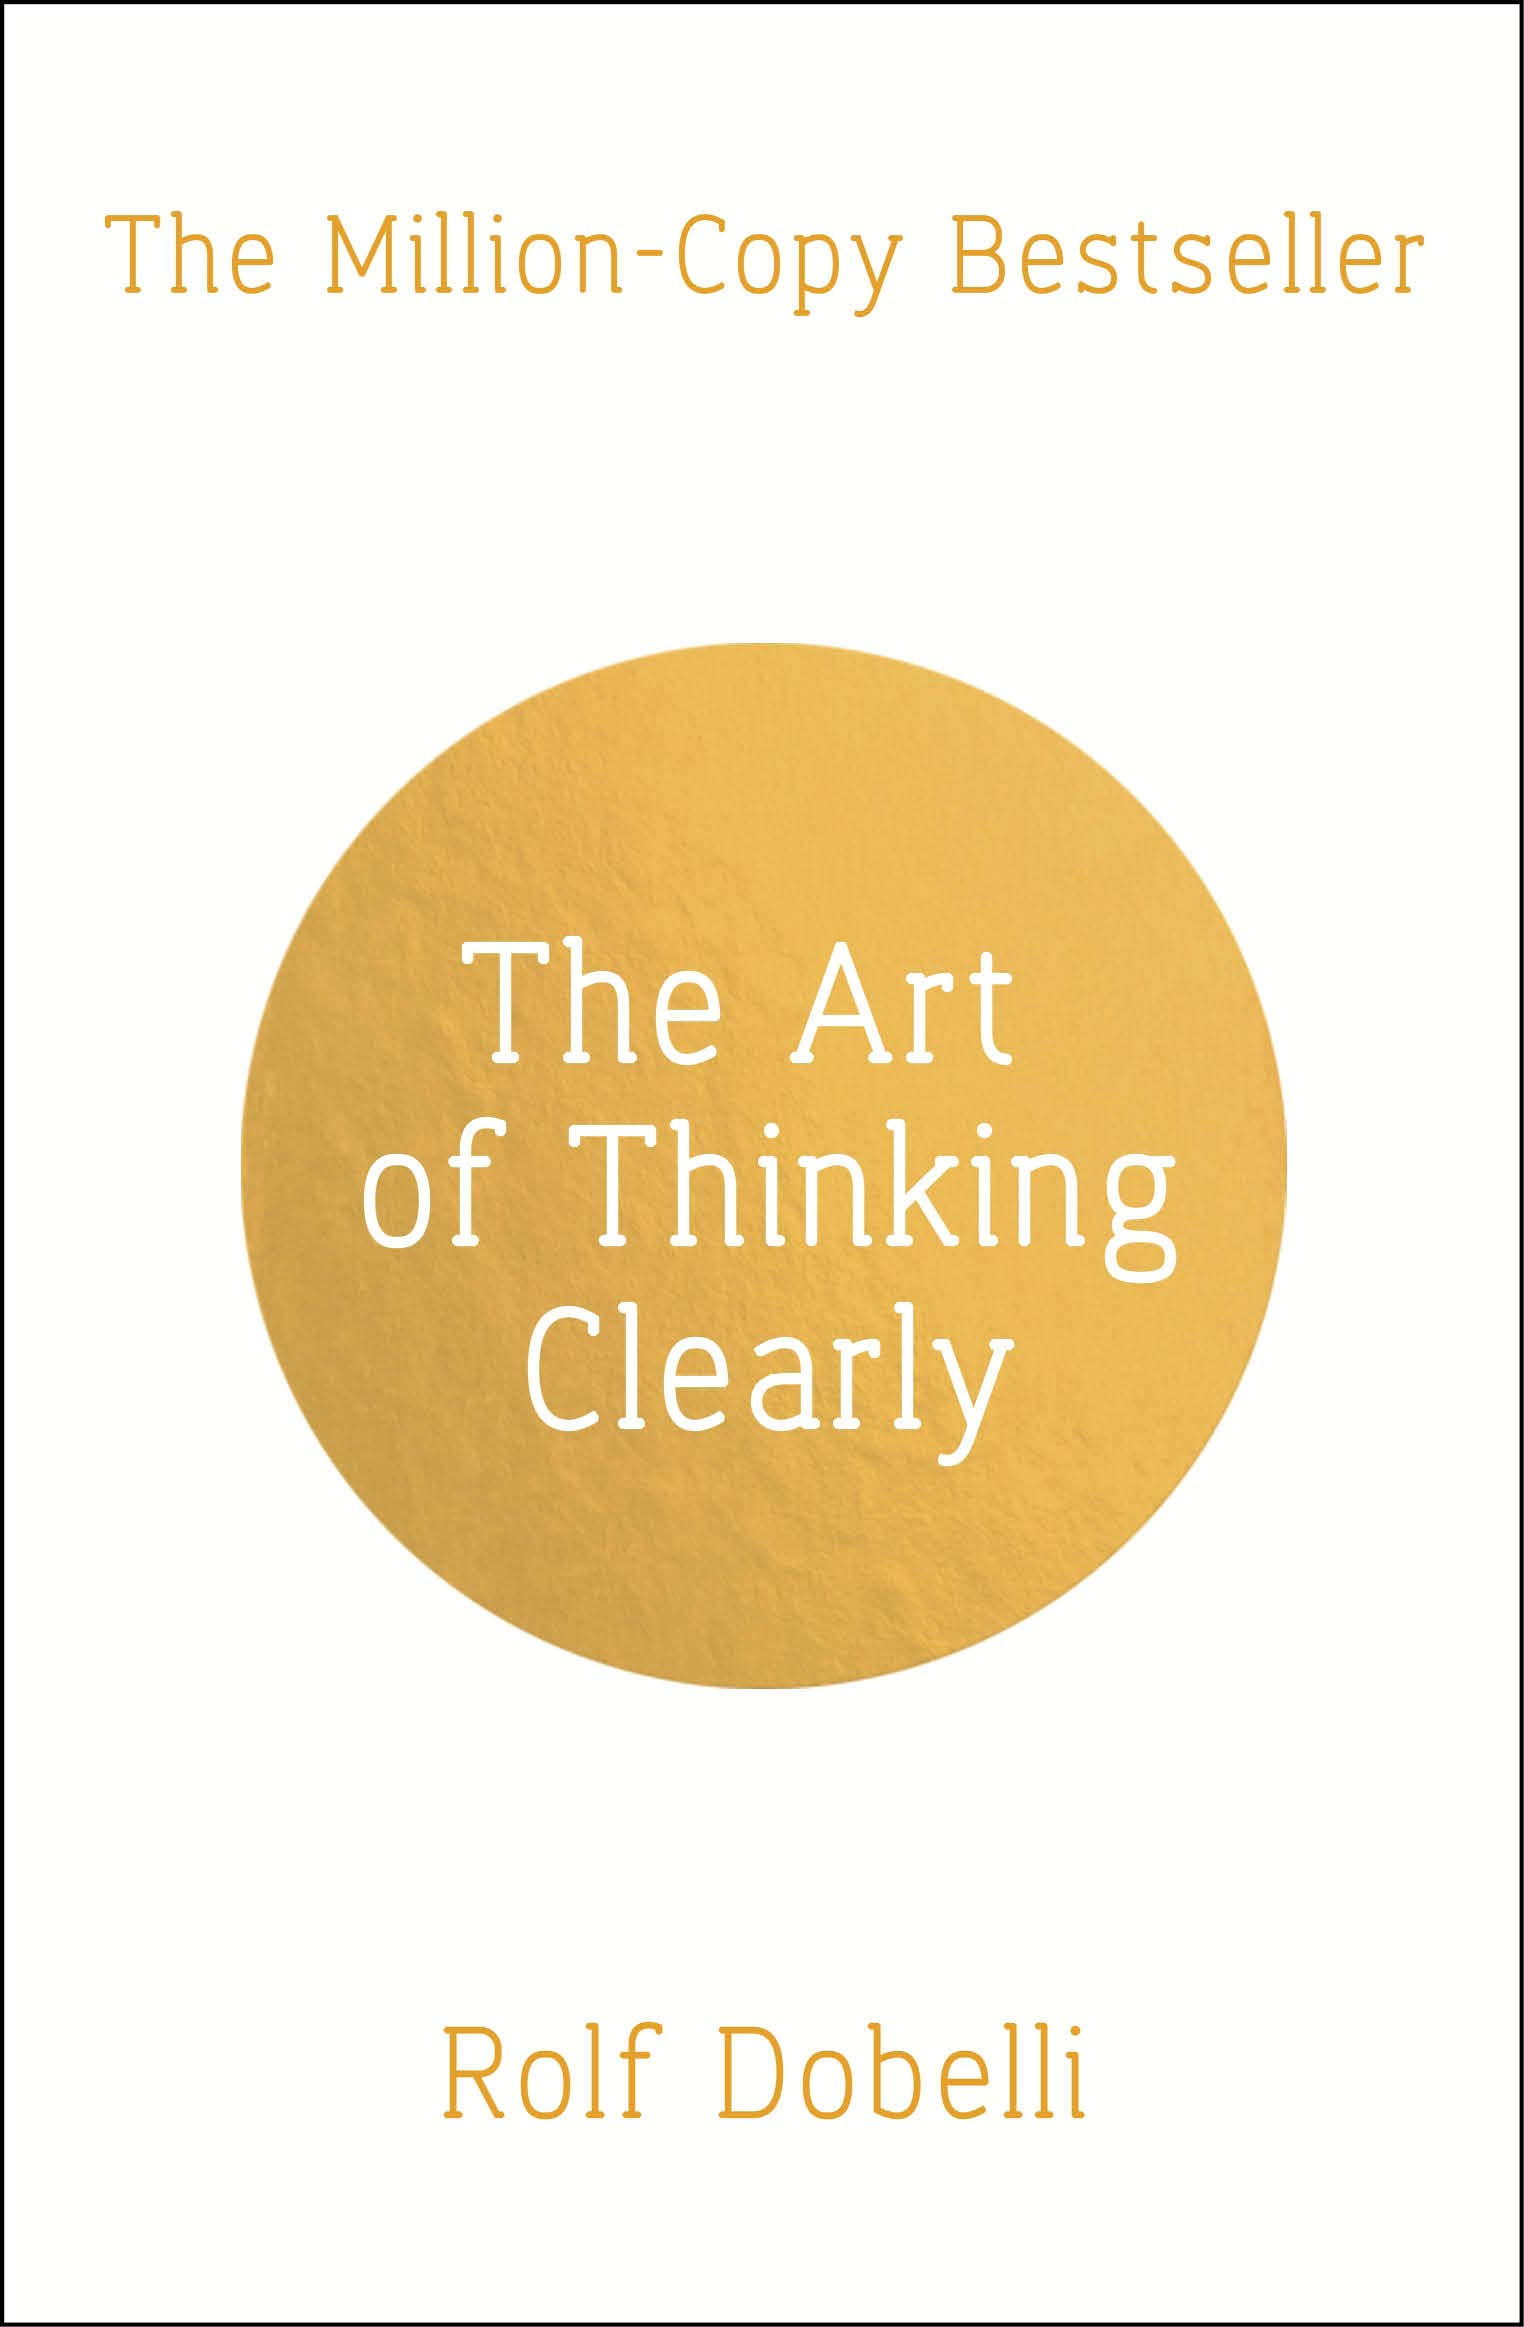 Recommendation - The Art of Thinking Clearly